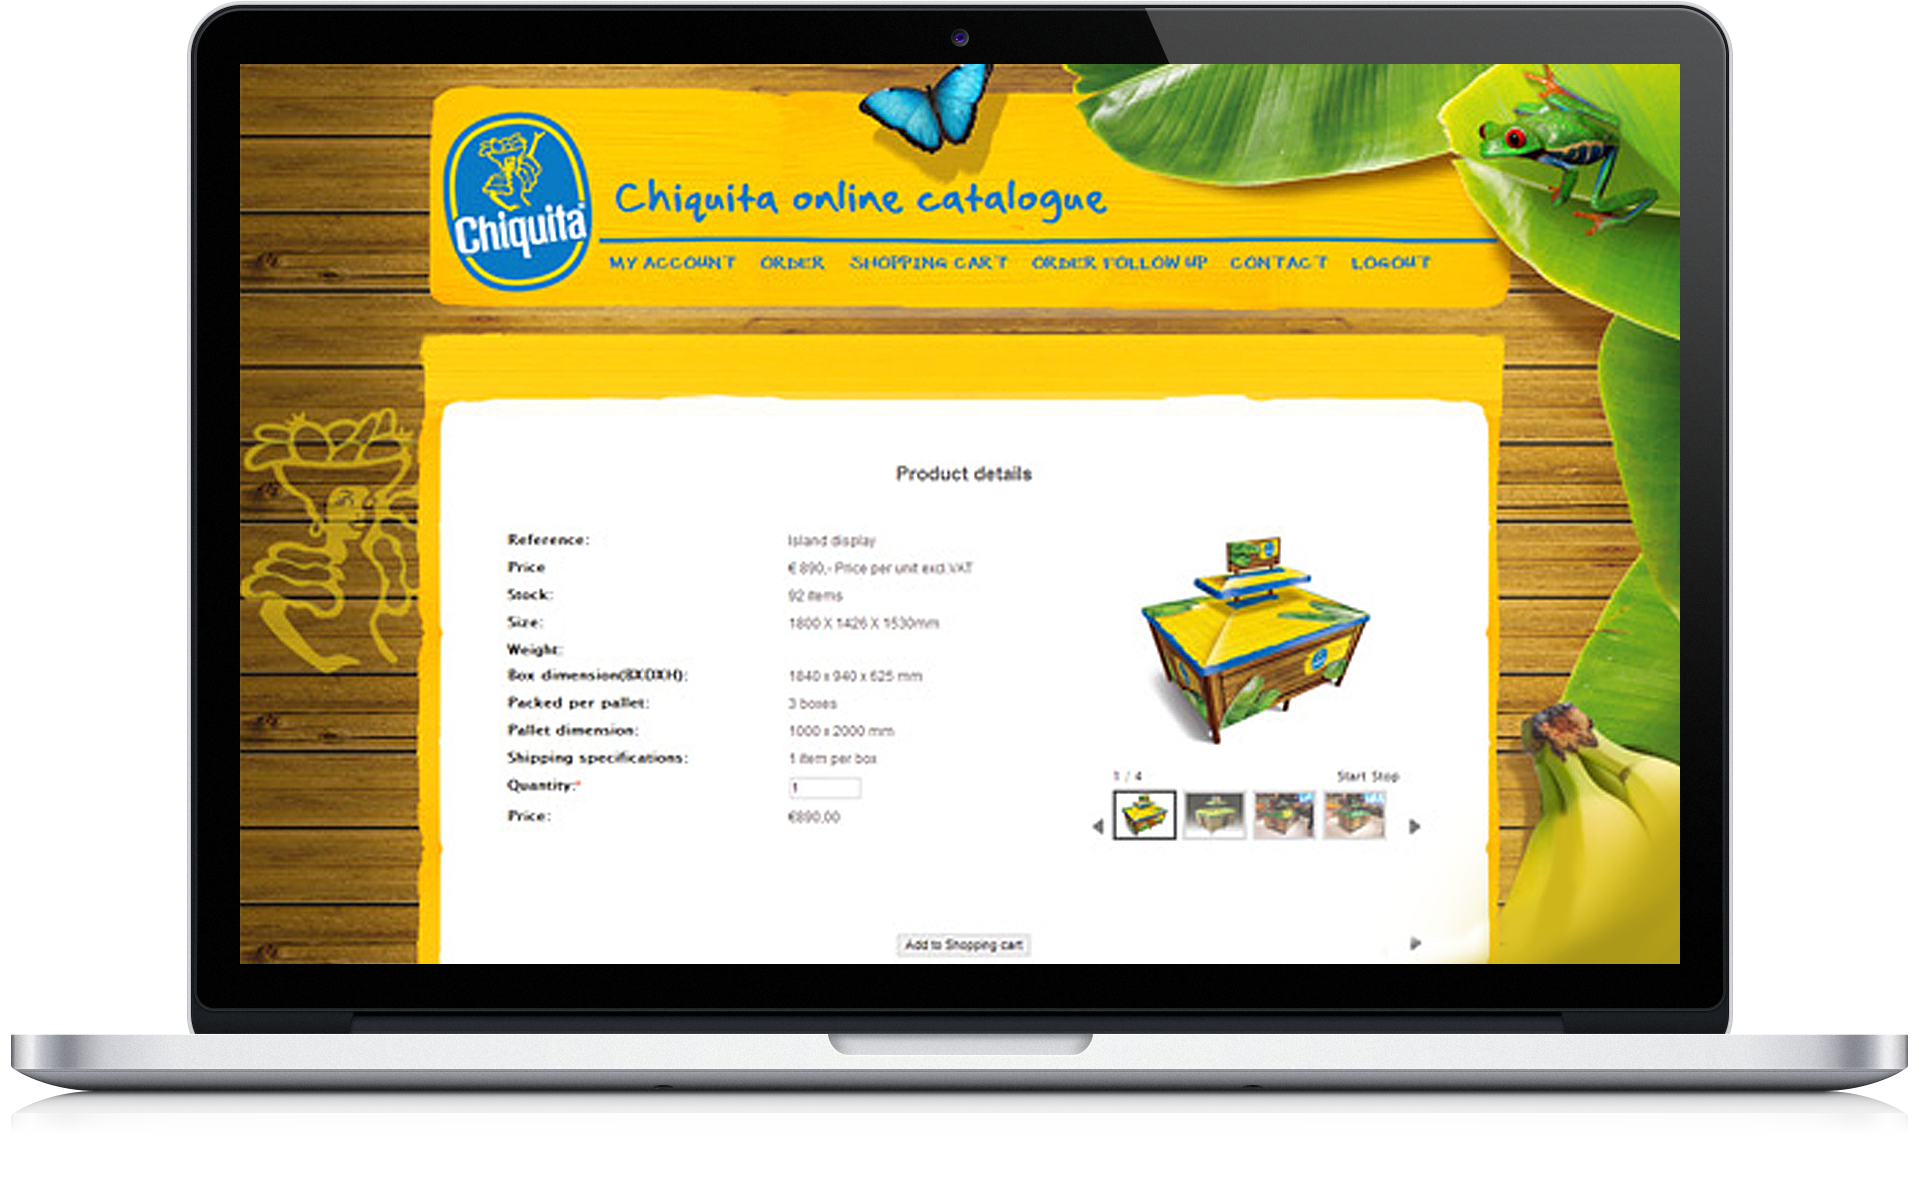 Chiquita laptop (png)